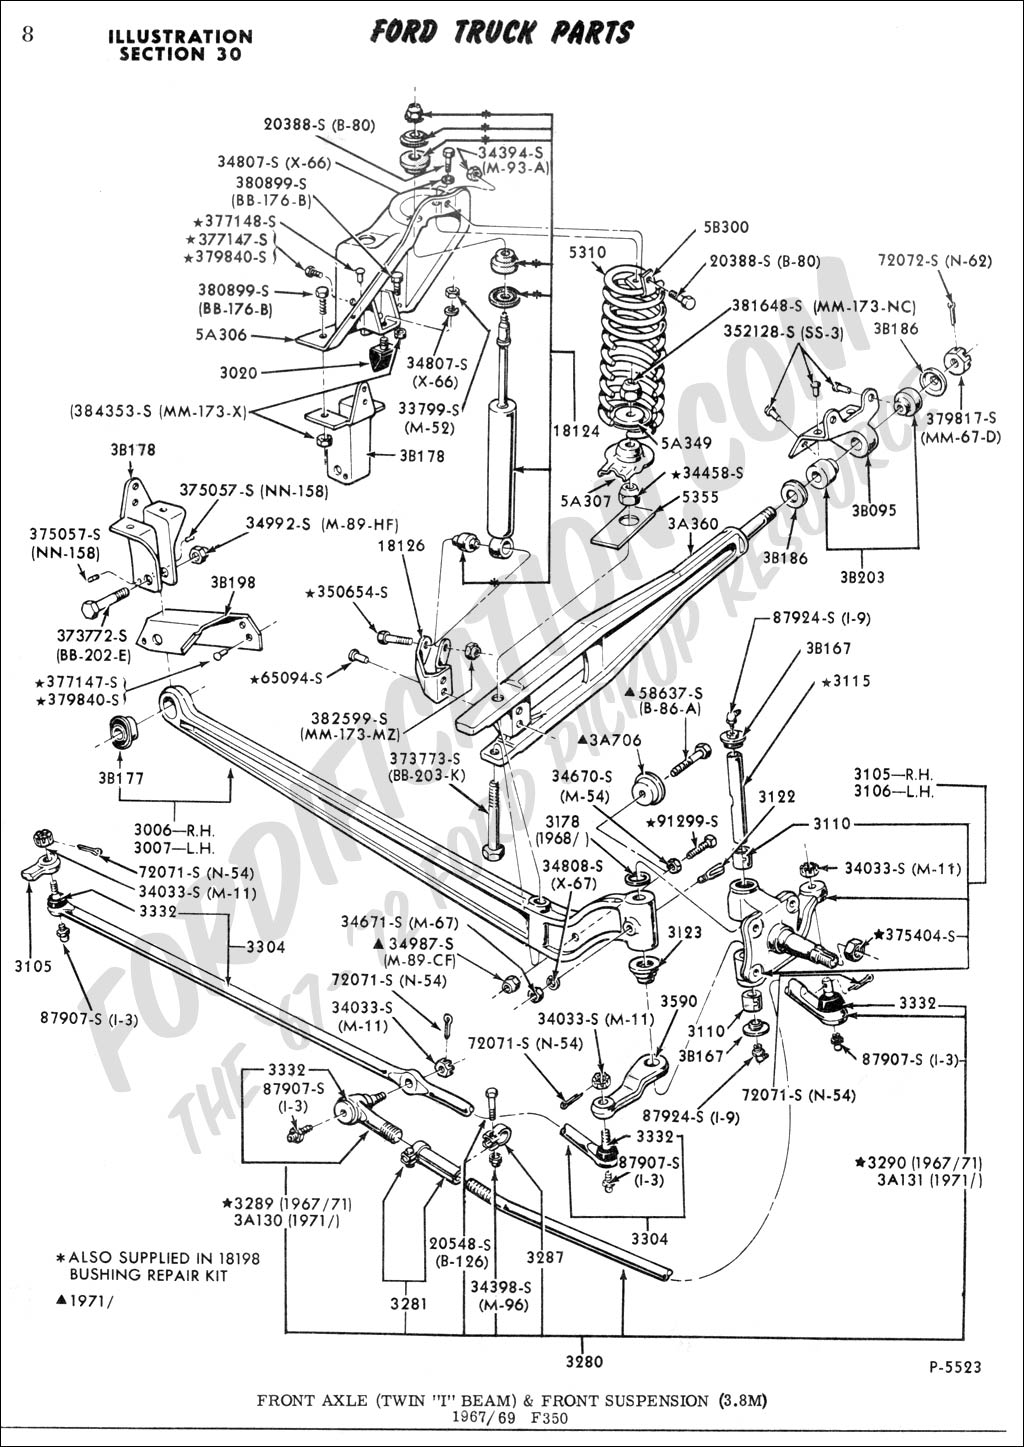 2003 Ford F250 Front Suspension Diagram Not Lossing Wiring Diagram